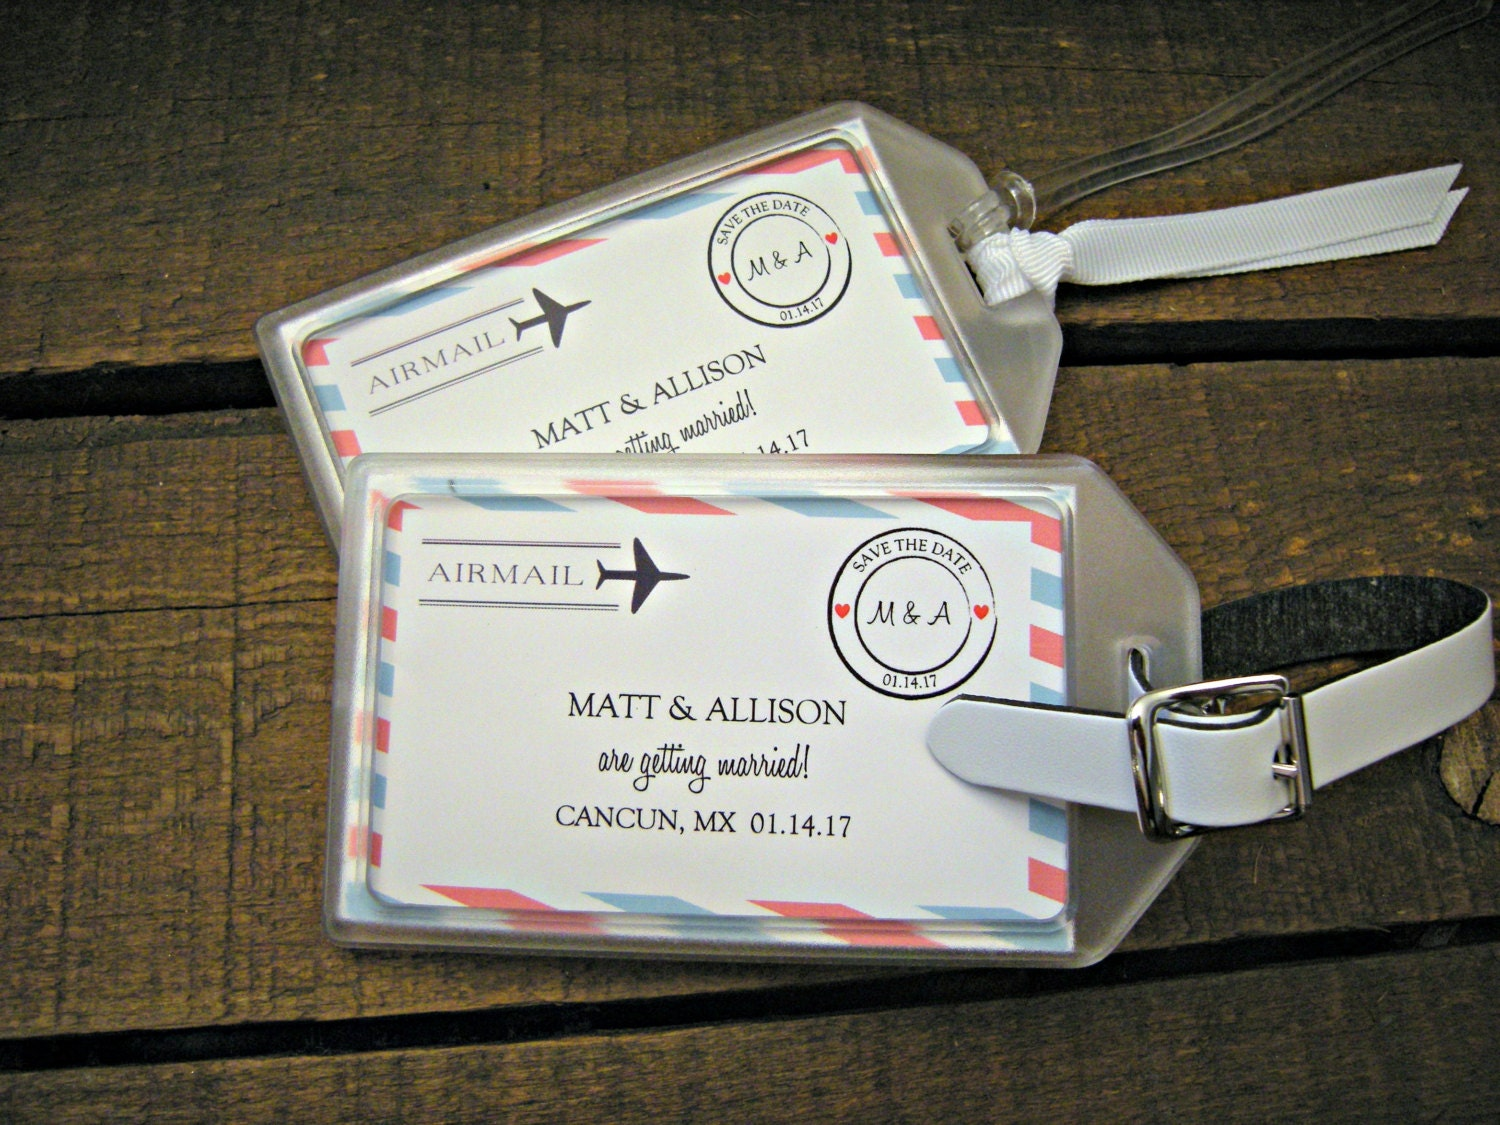 Save the Date Luggage Tags for Destination Weddings Luggage